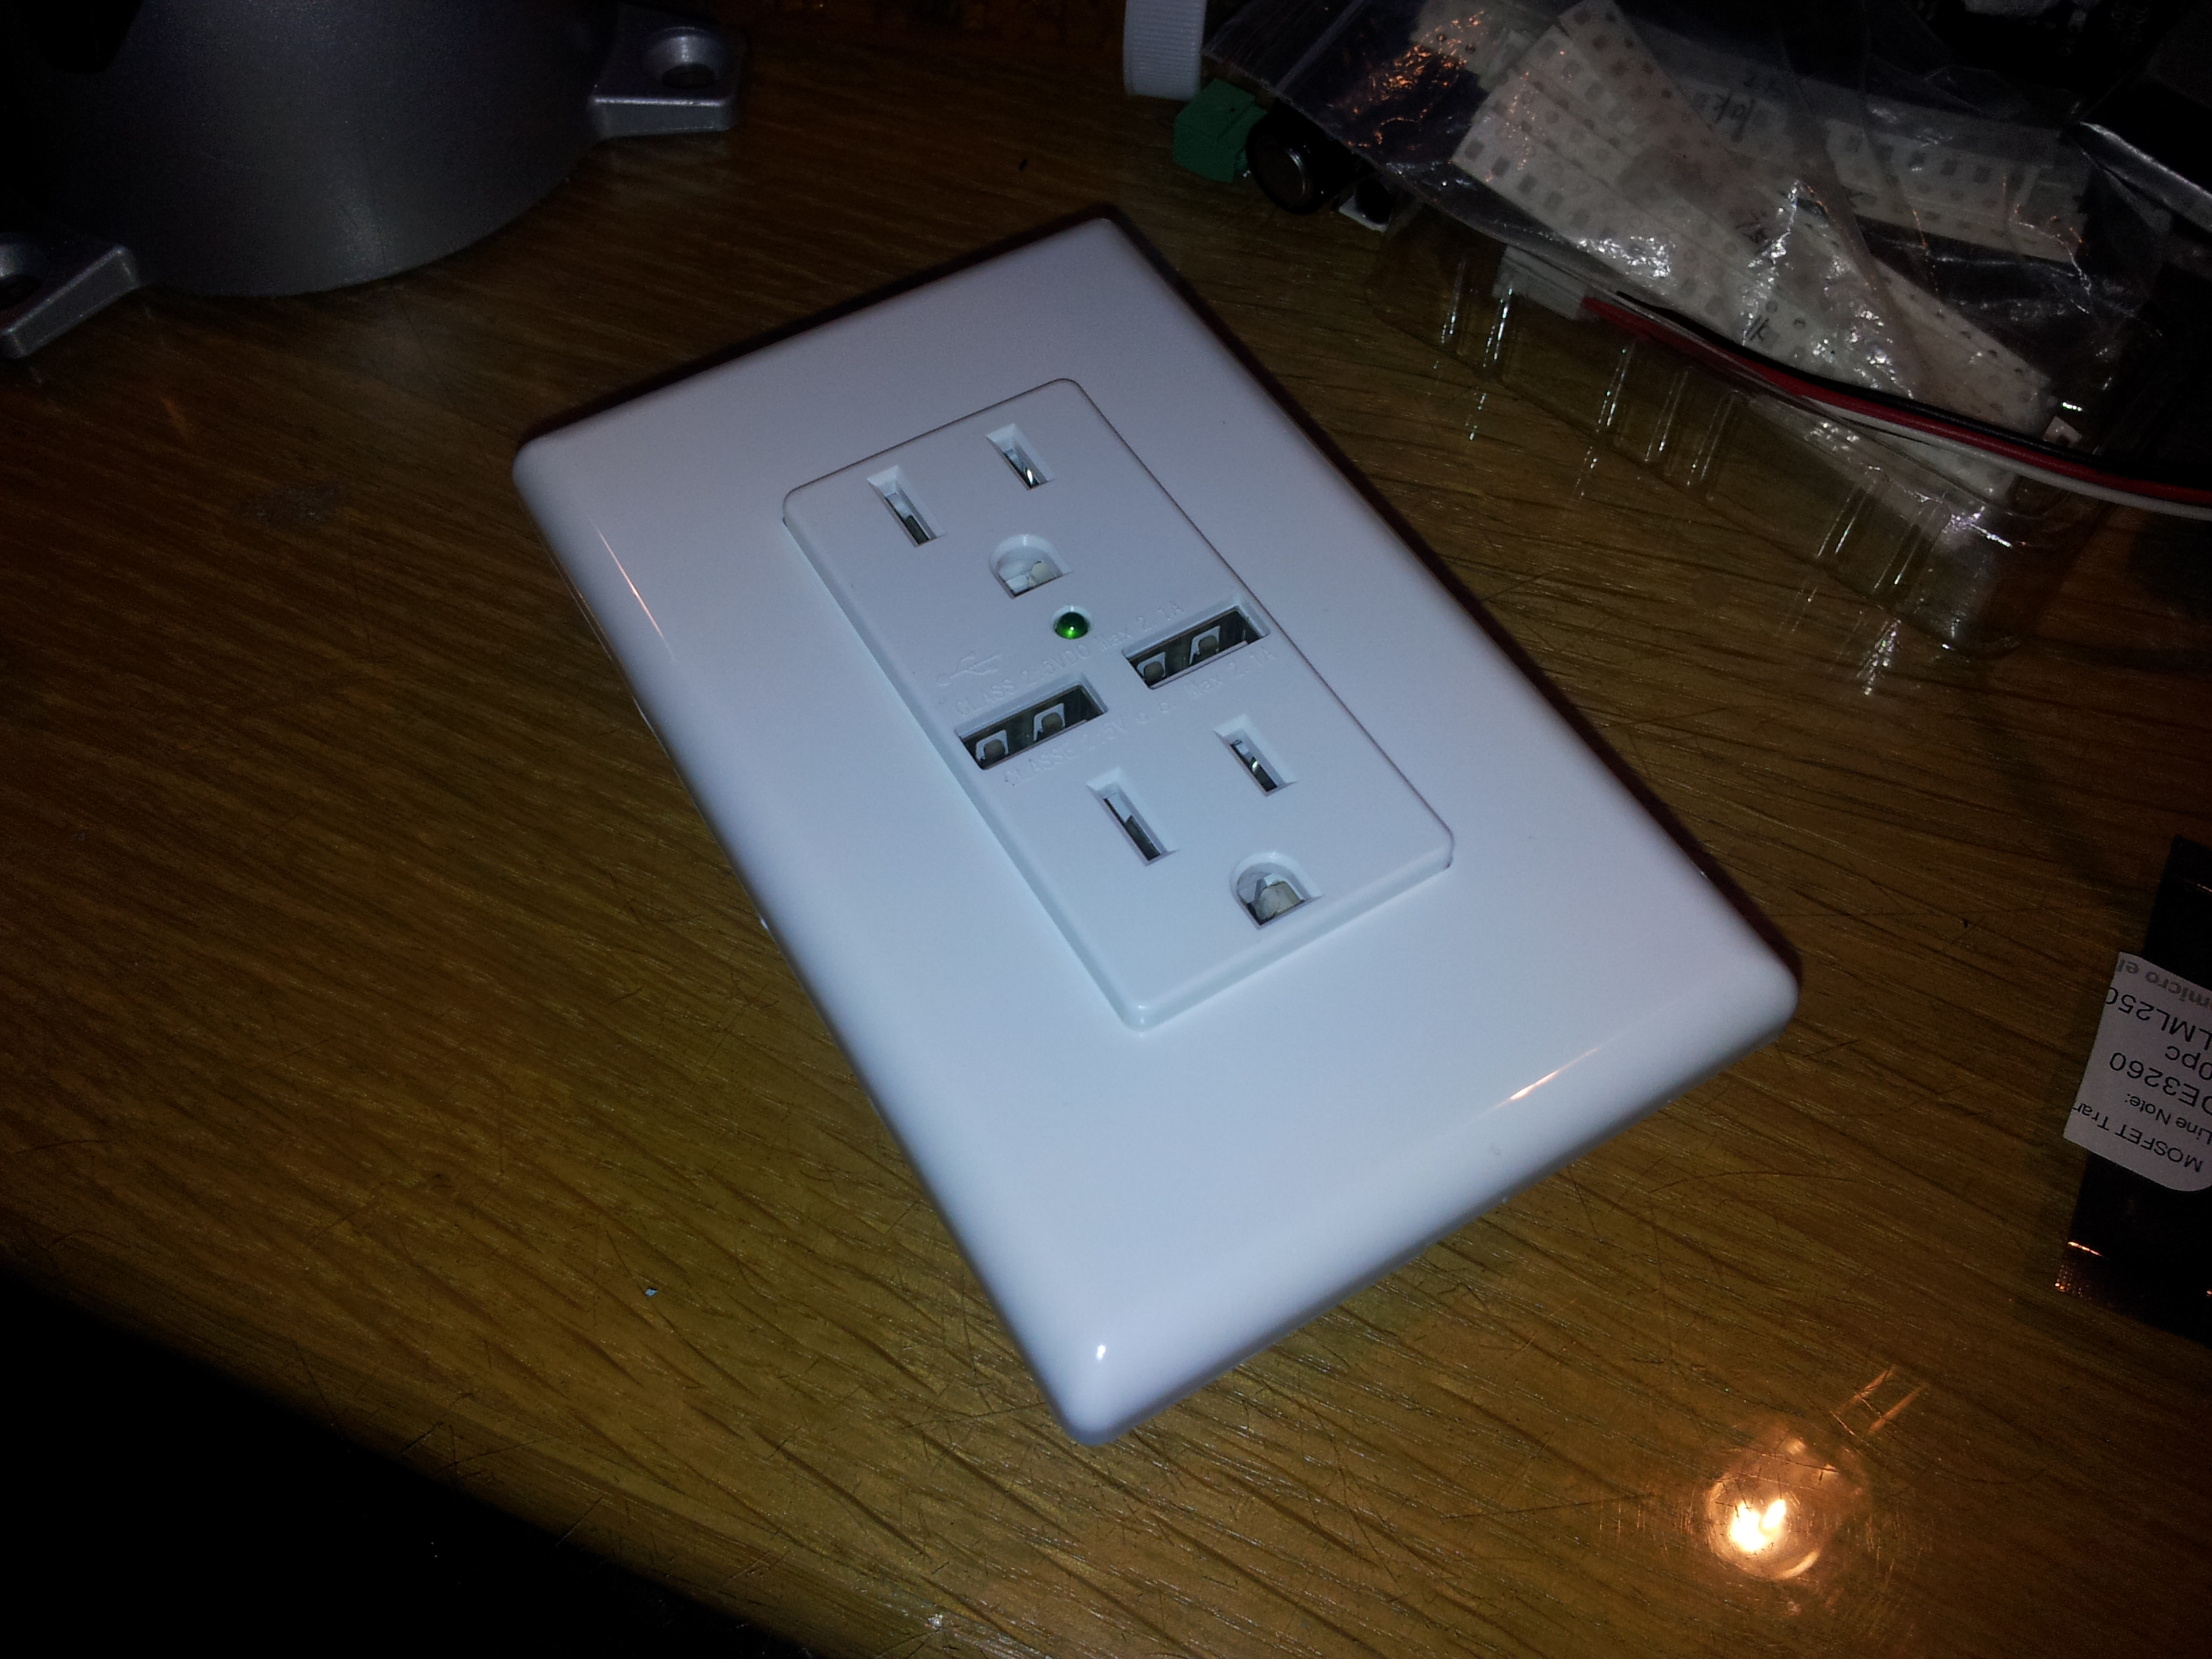 Review, teardown and analysis of Charging Essentials USB wall outlet ...